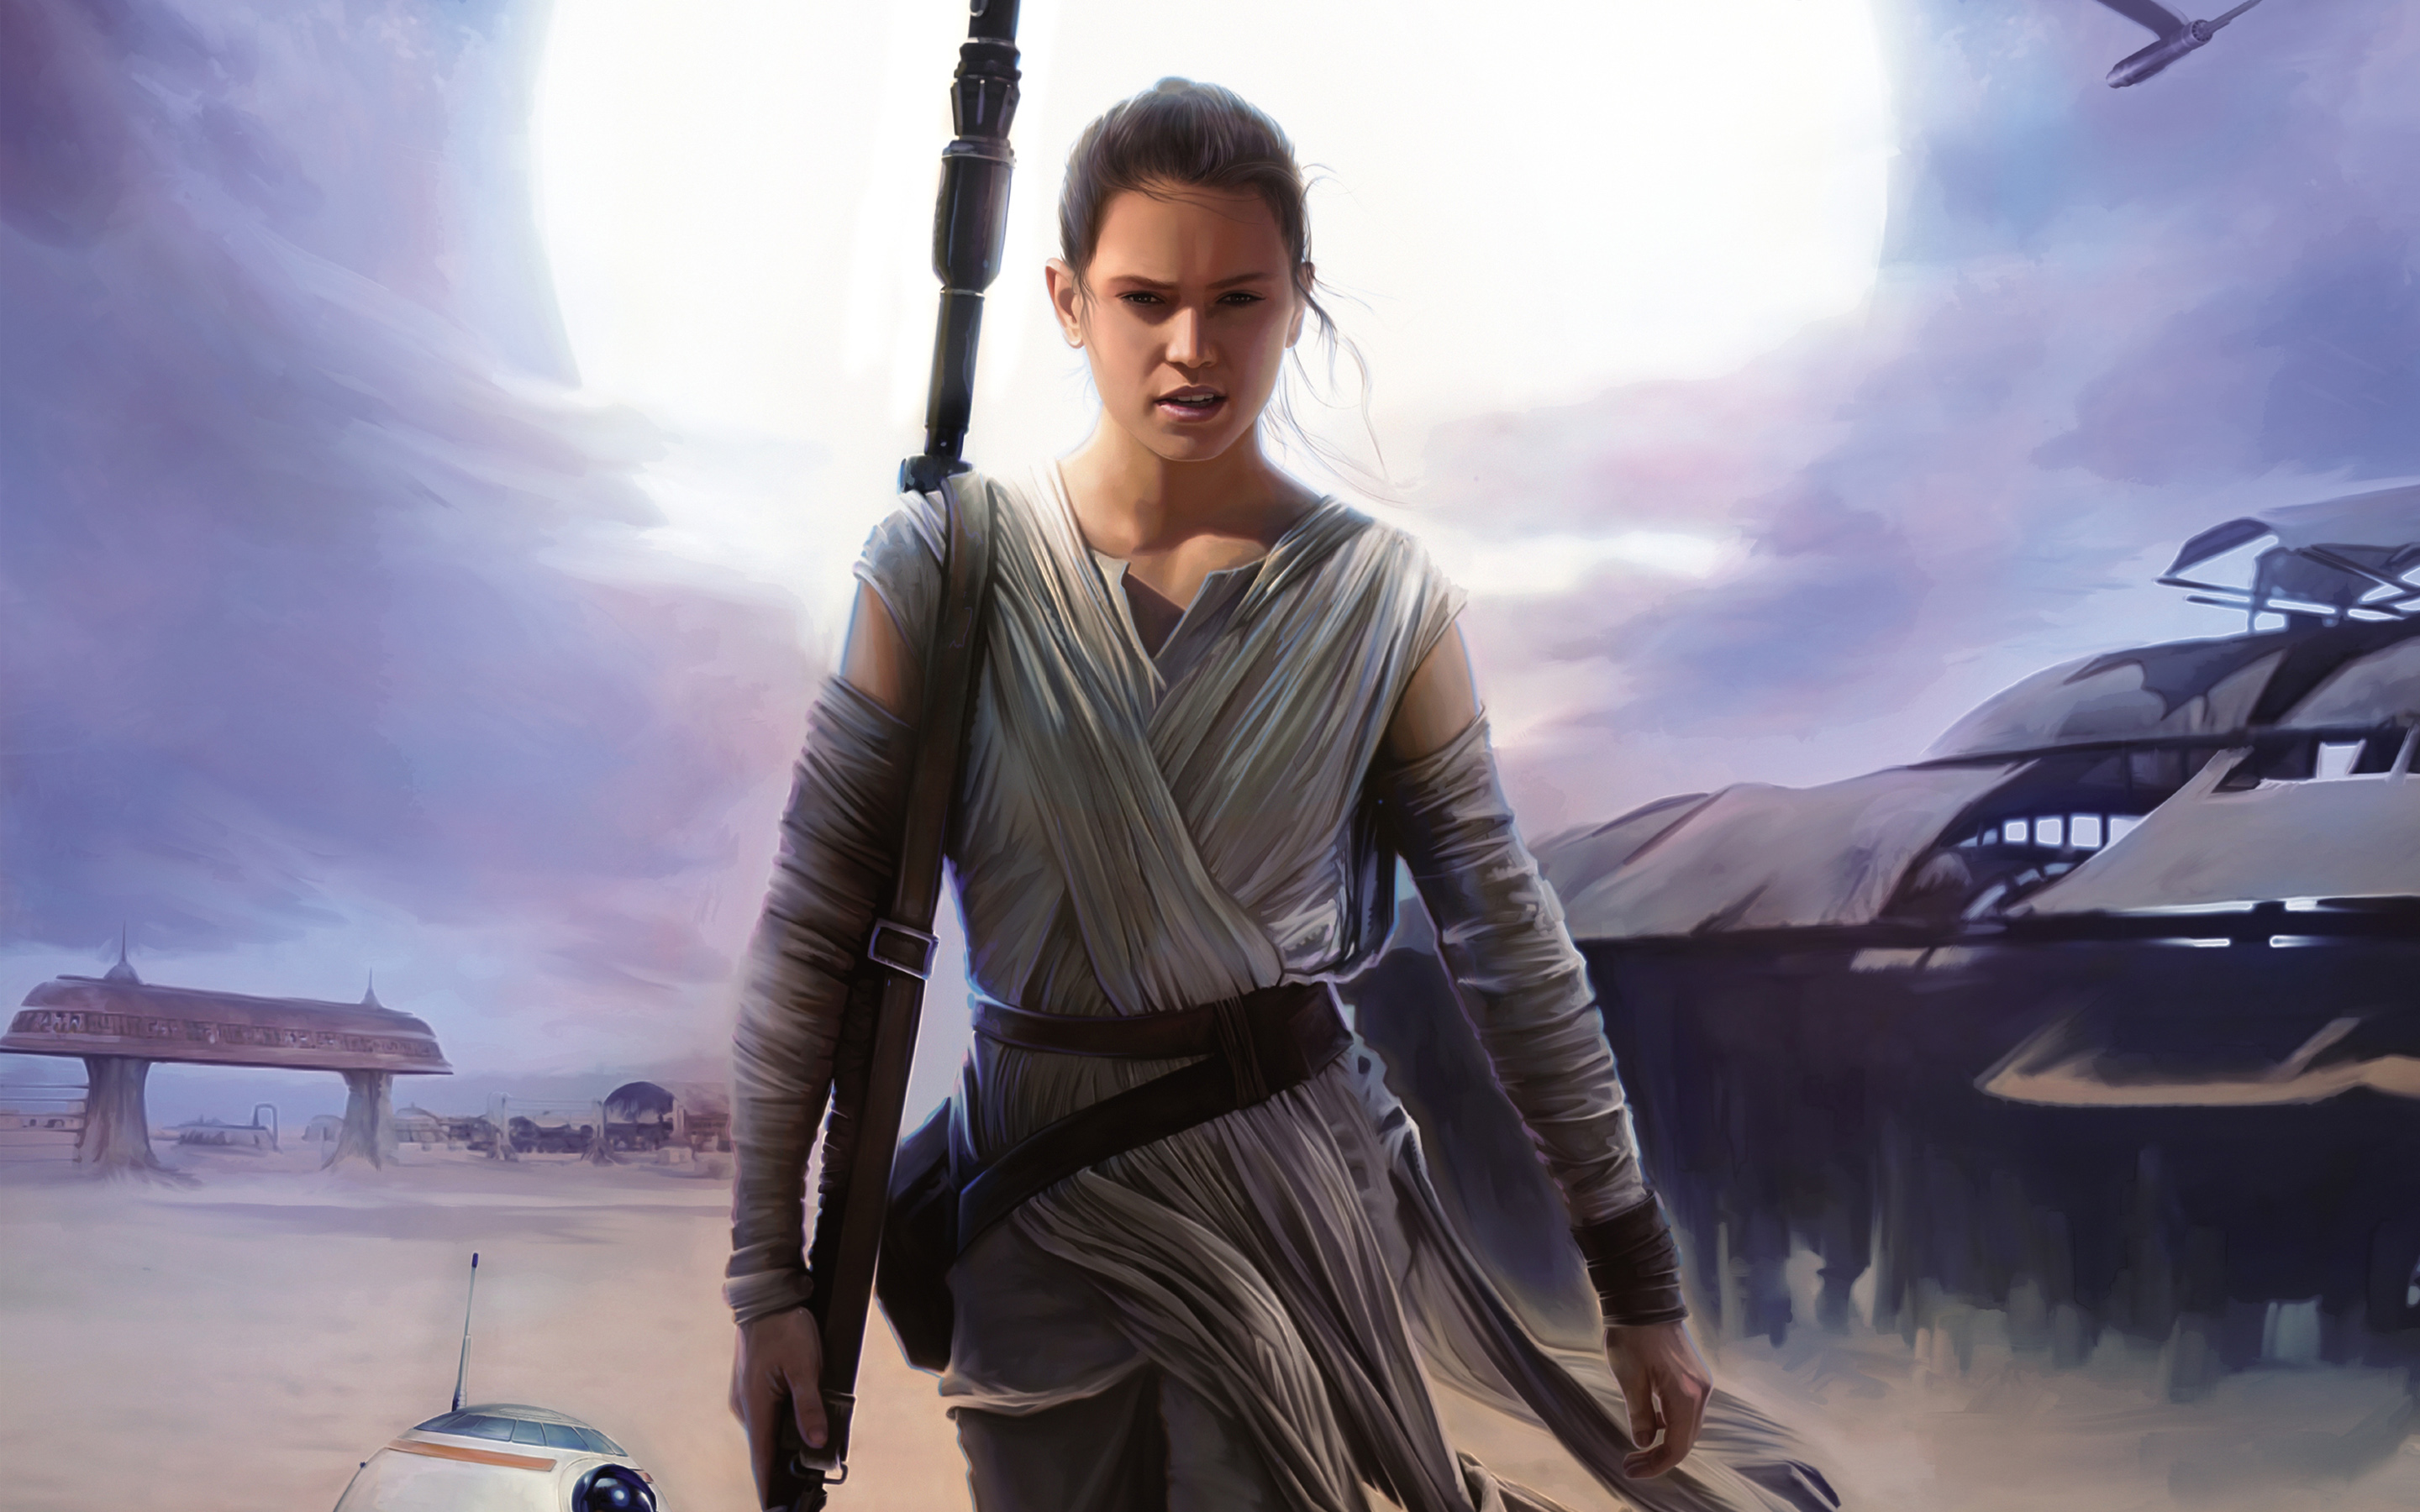 Rey Star Wars The Force Awakens Wallpapers HD Wallpapers 2880x1800